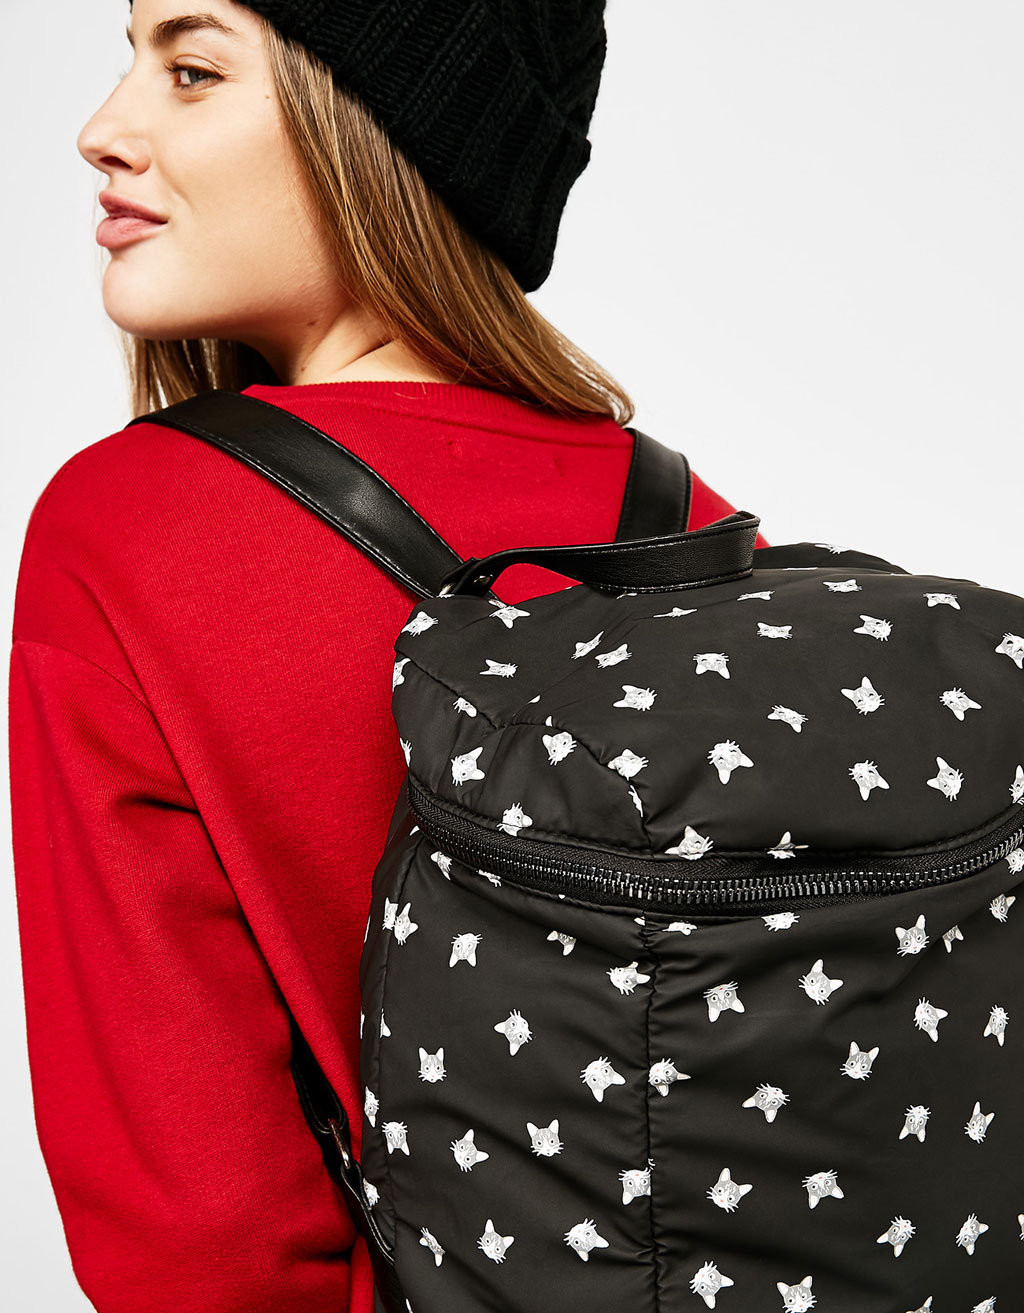 All-over cat print backpack